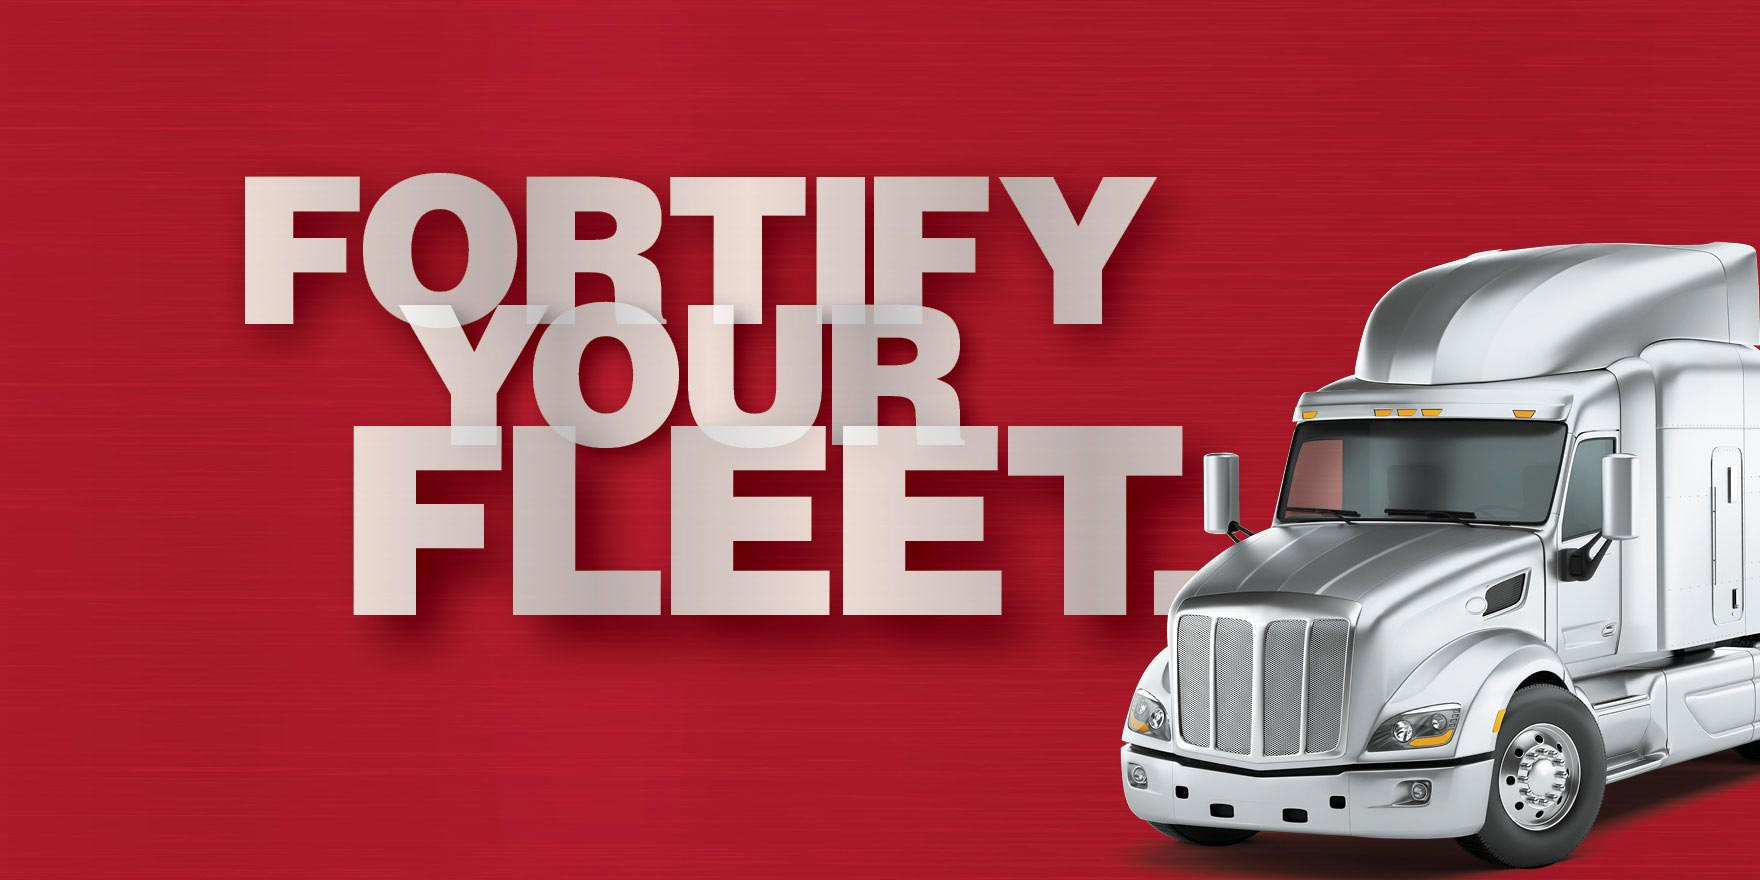 Fortify Your Fleet Header 2x